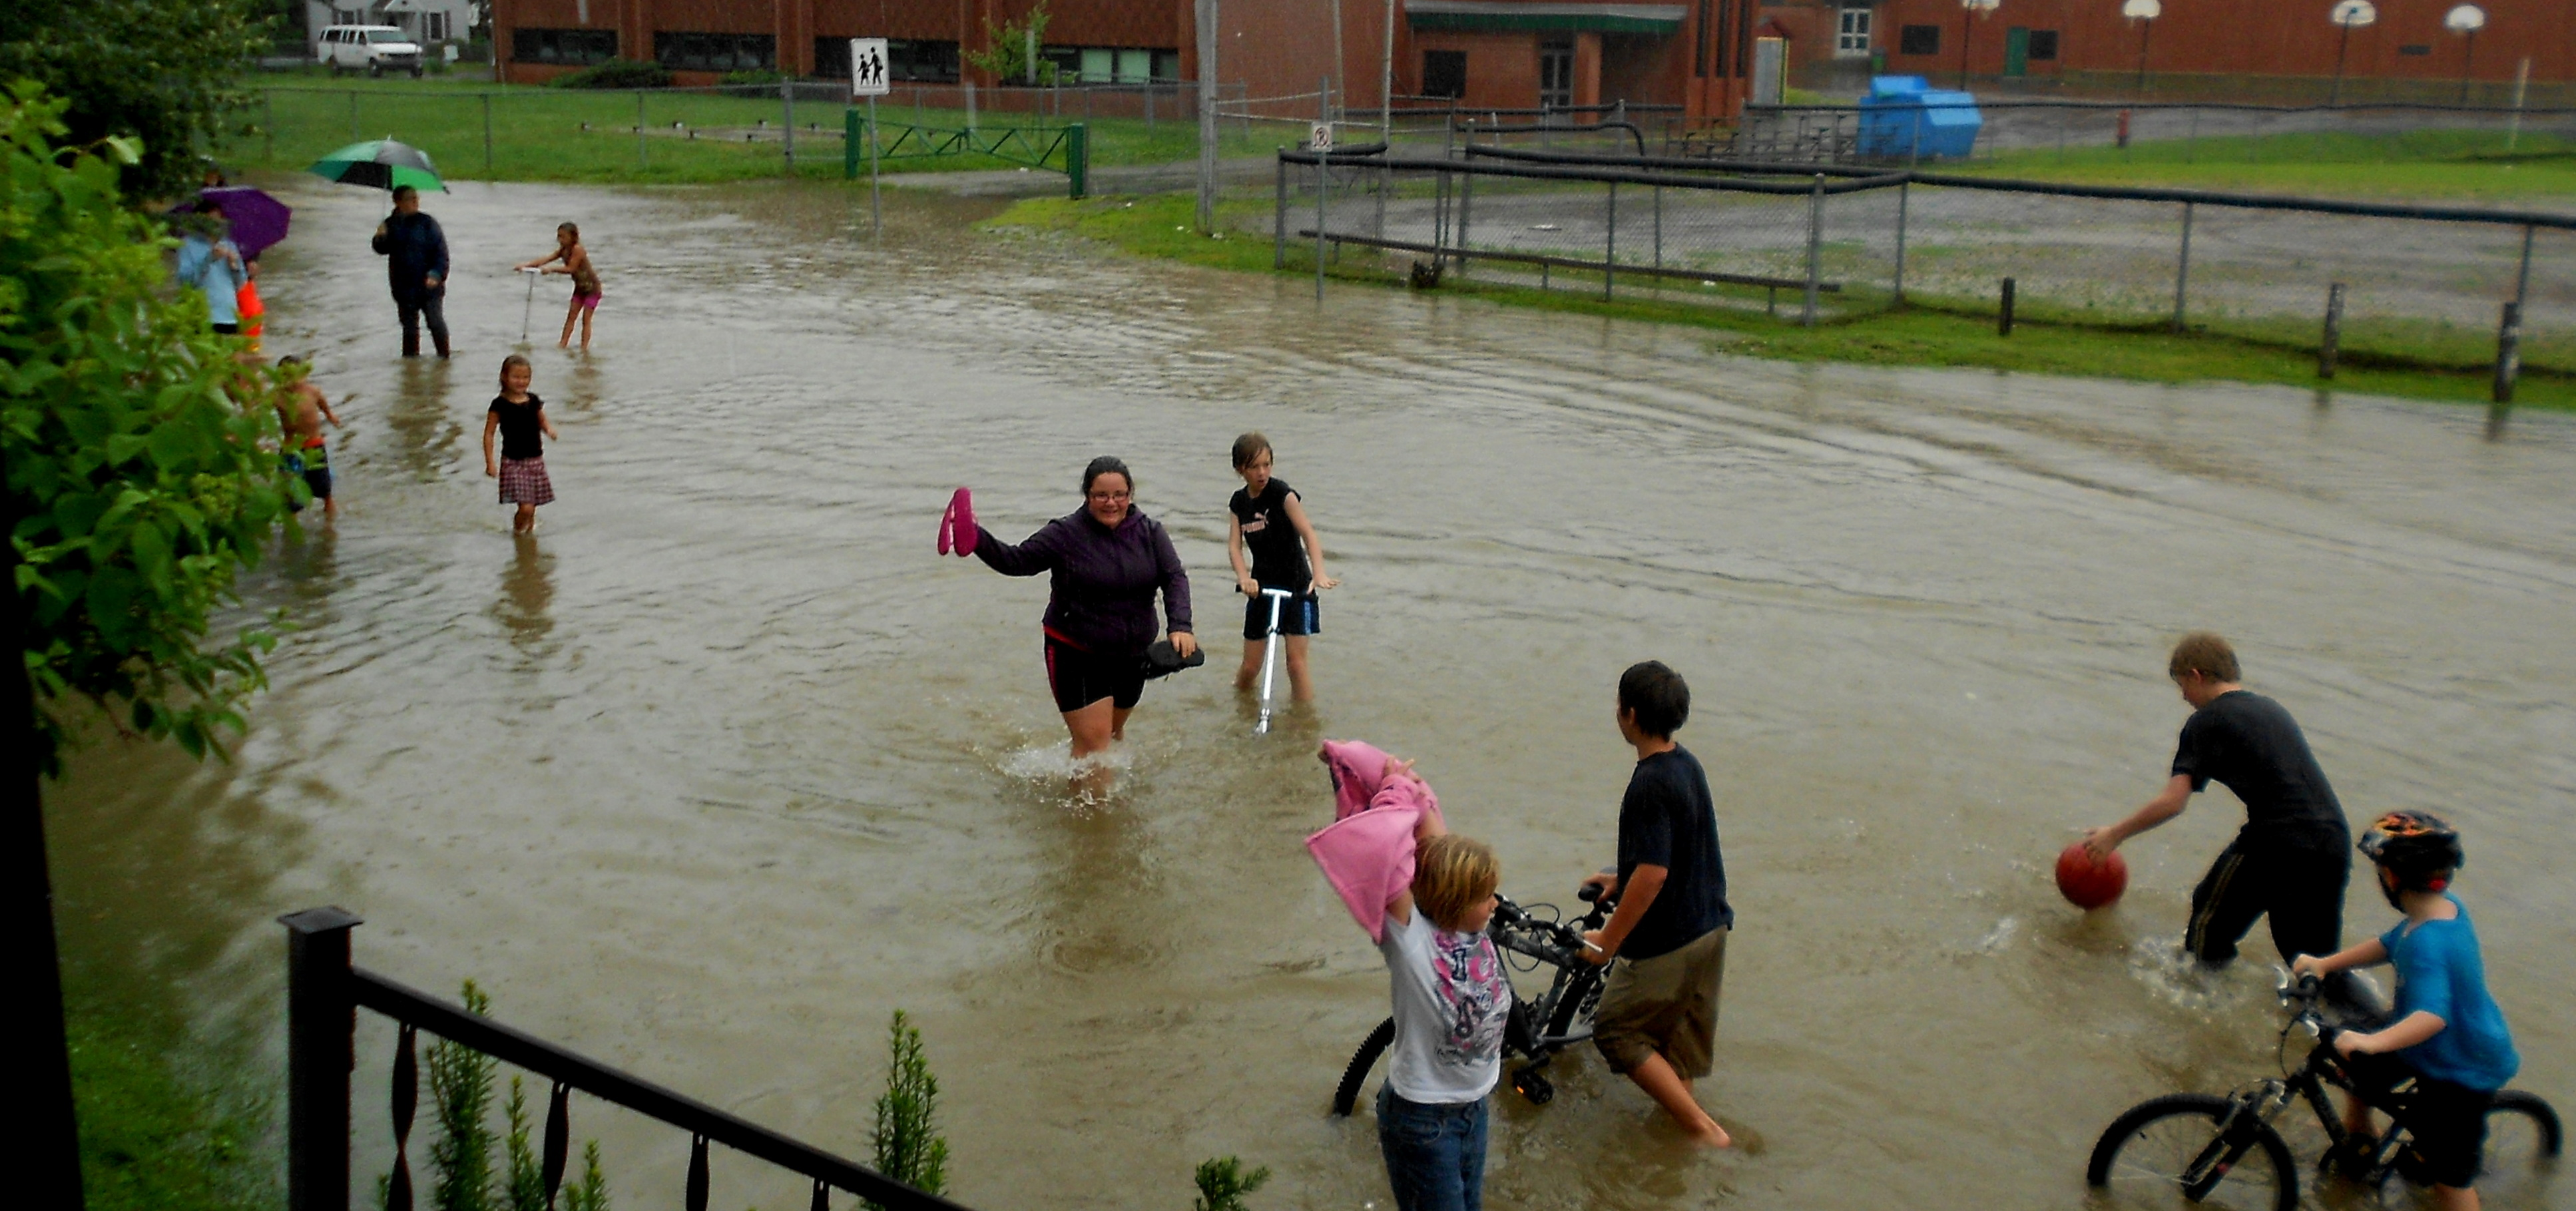 impromptu street party during flood